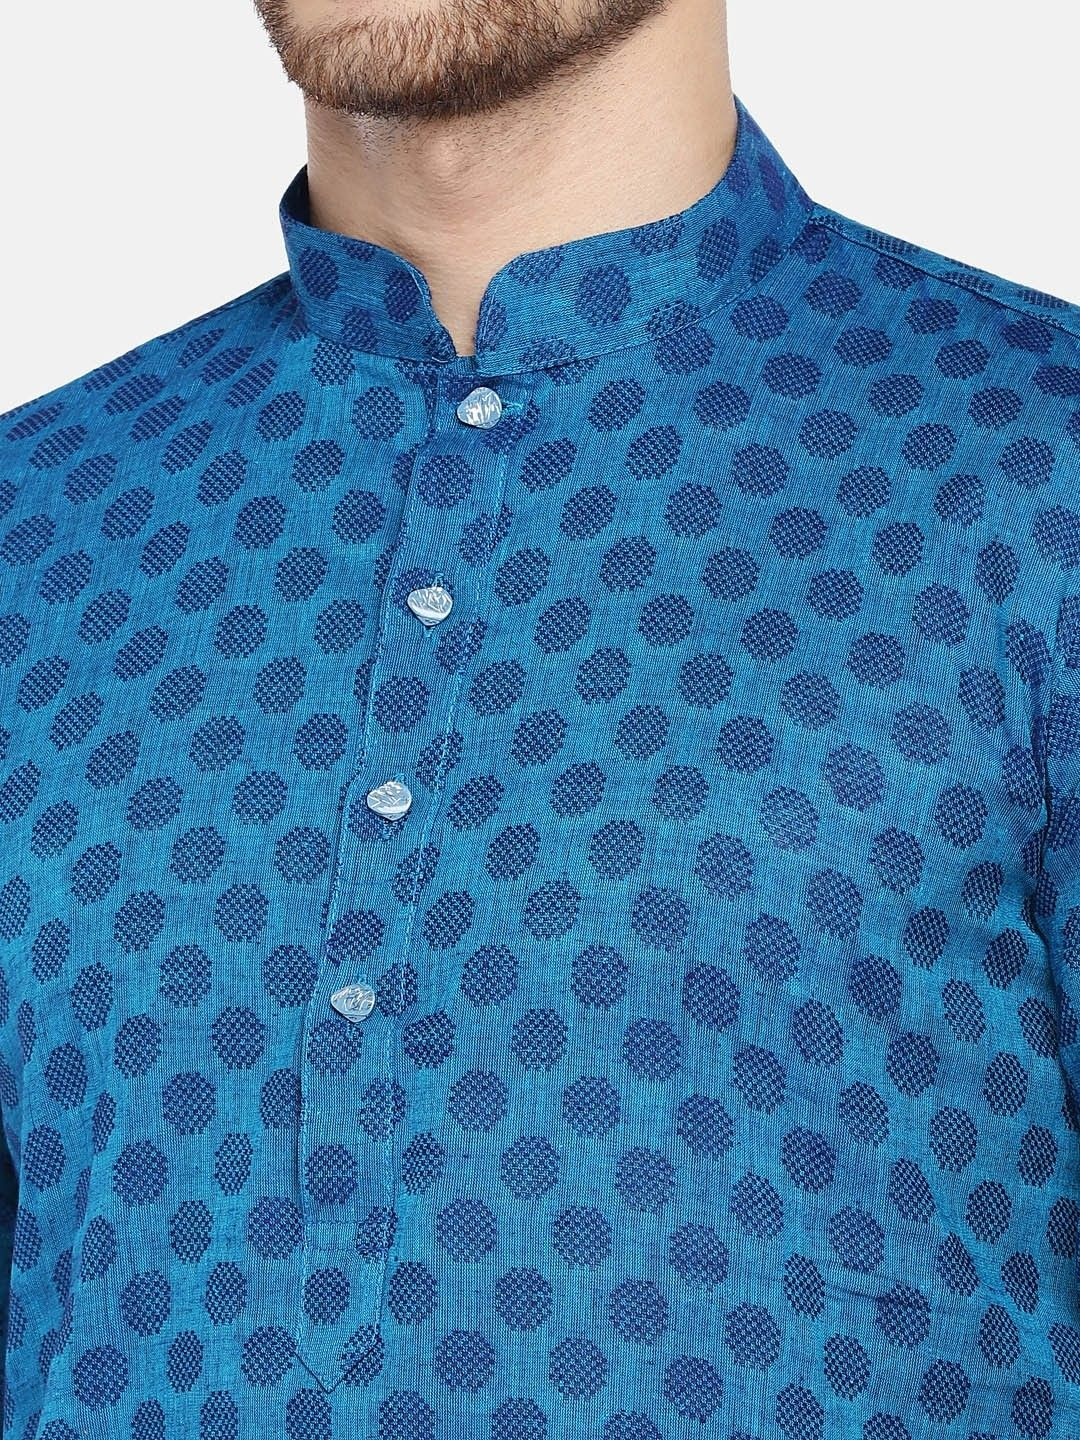 Blue Handloom Dobby Cotton Kurta